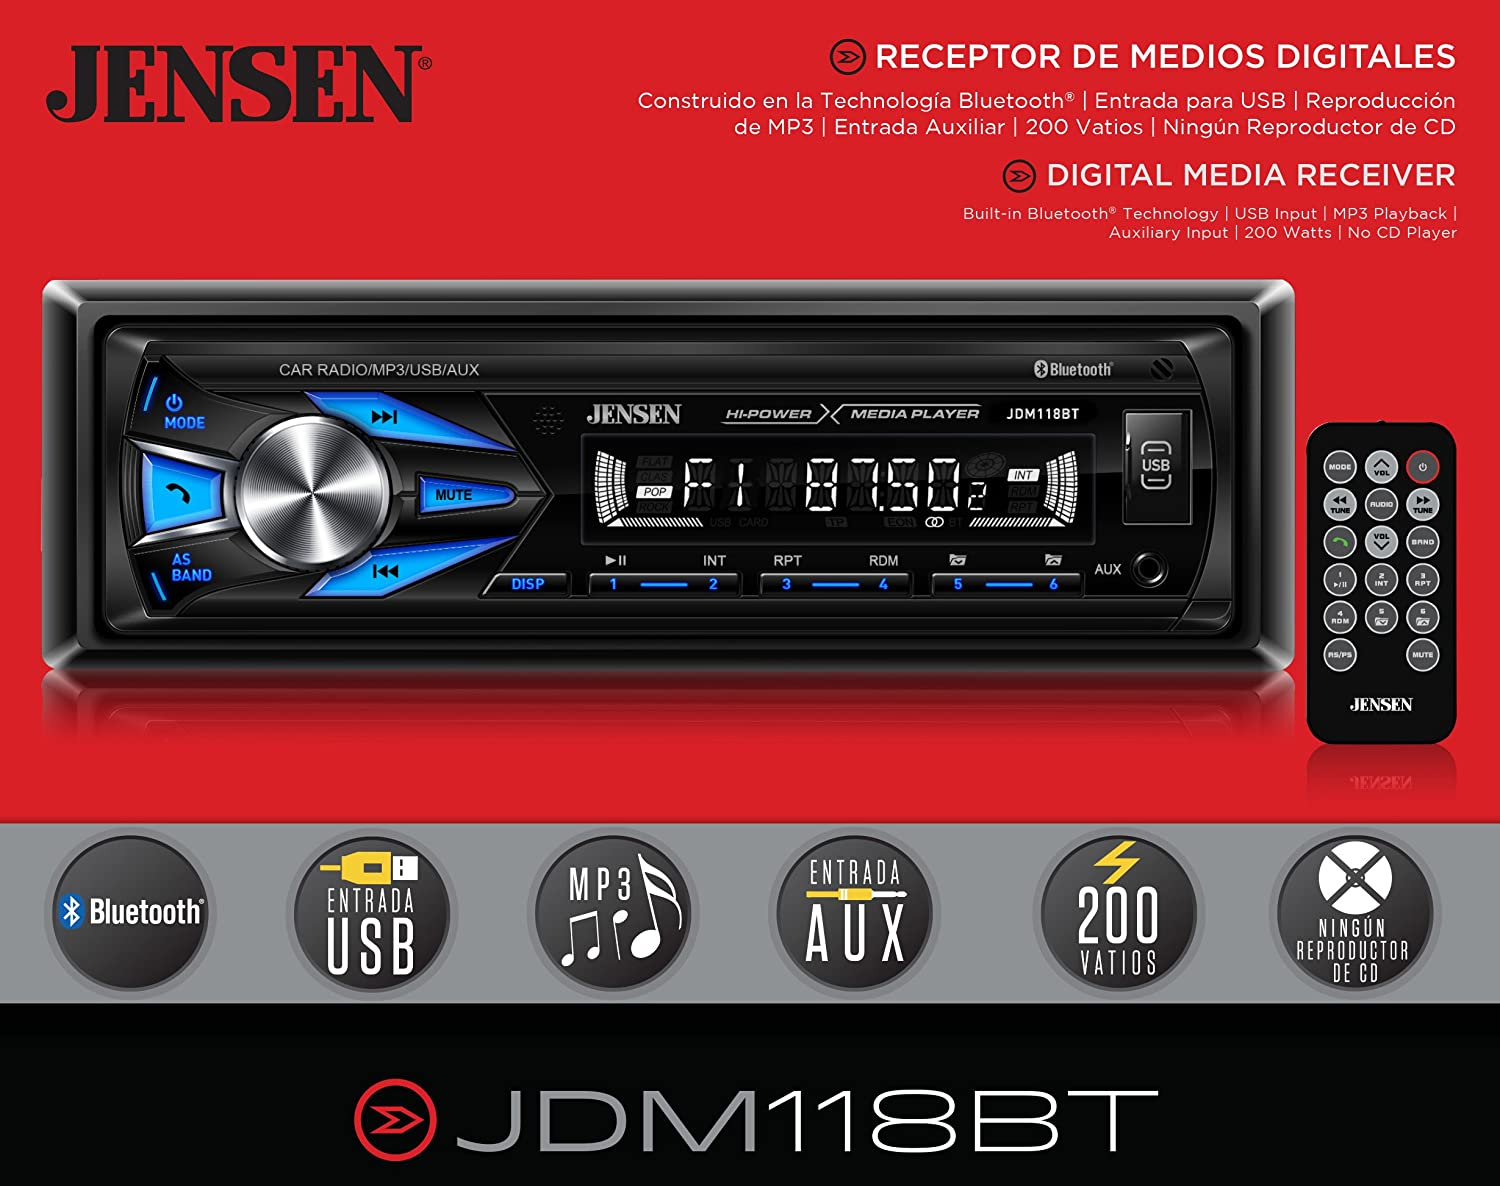 Jensen Jdm118bt Multimedia High Definition 7 Character Lcd Single Wiring Harness Diagram Further Xo Vision Car In Din Stereo Receiver With Built Bluetooth Usb Mp3 Player